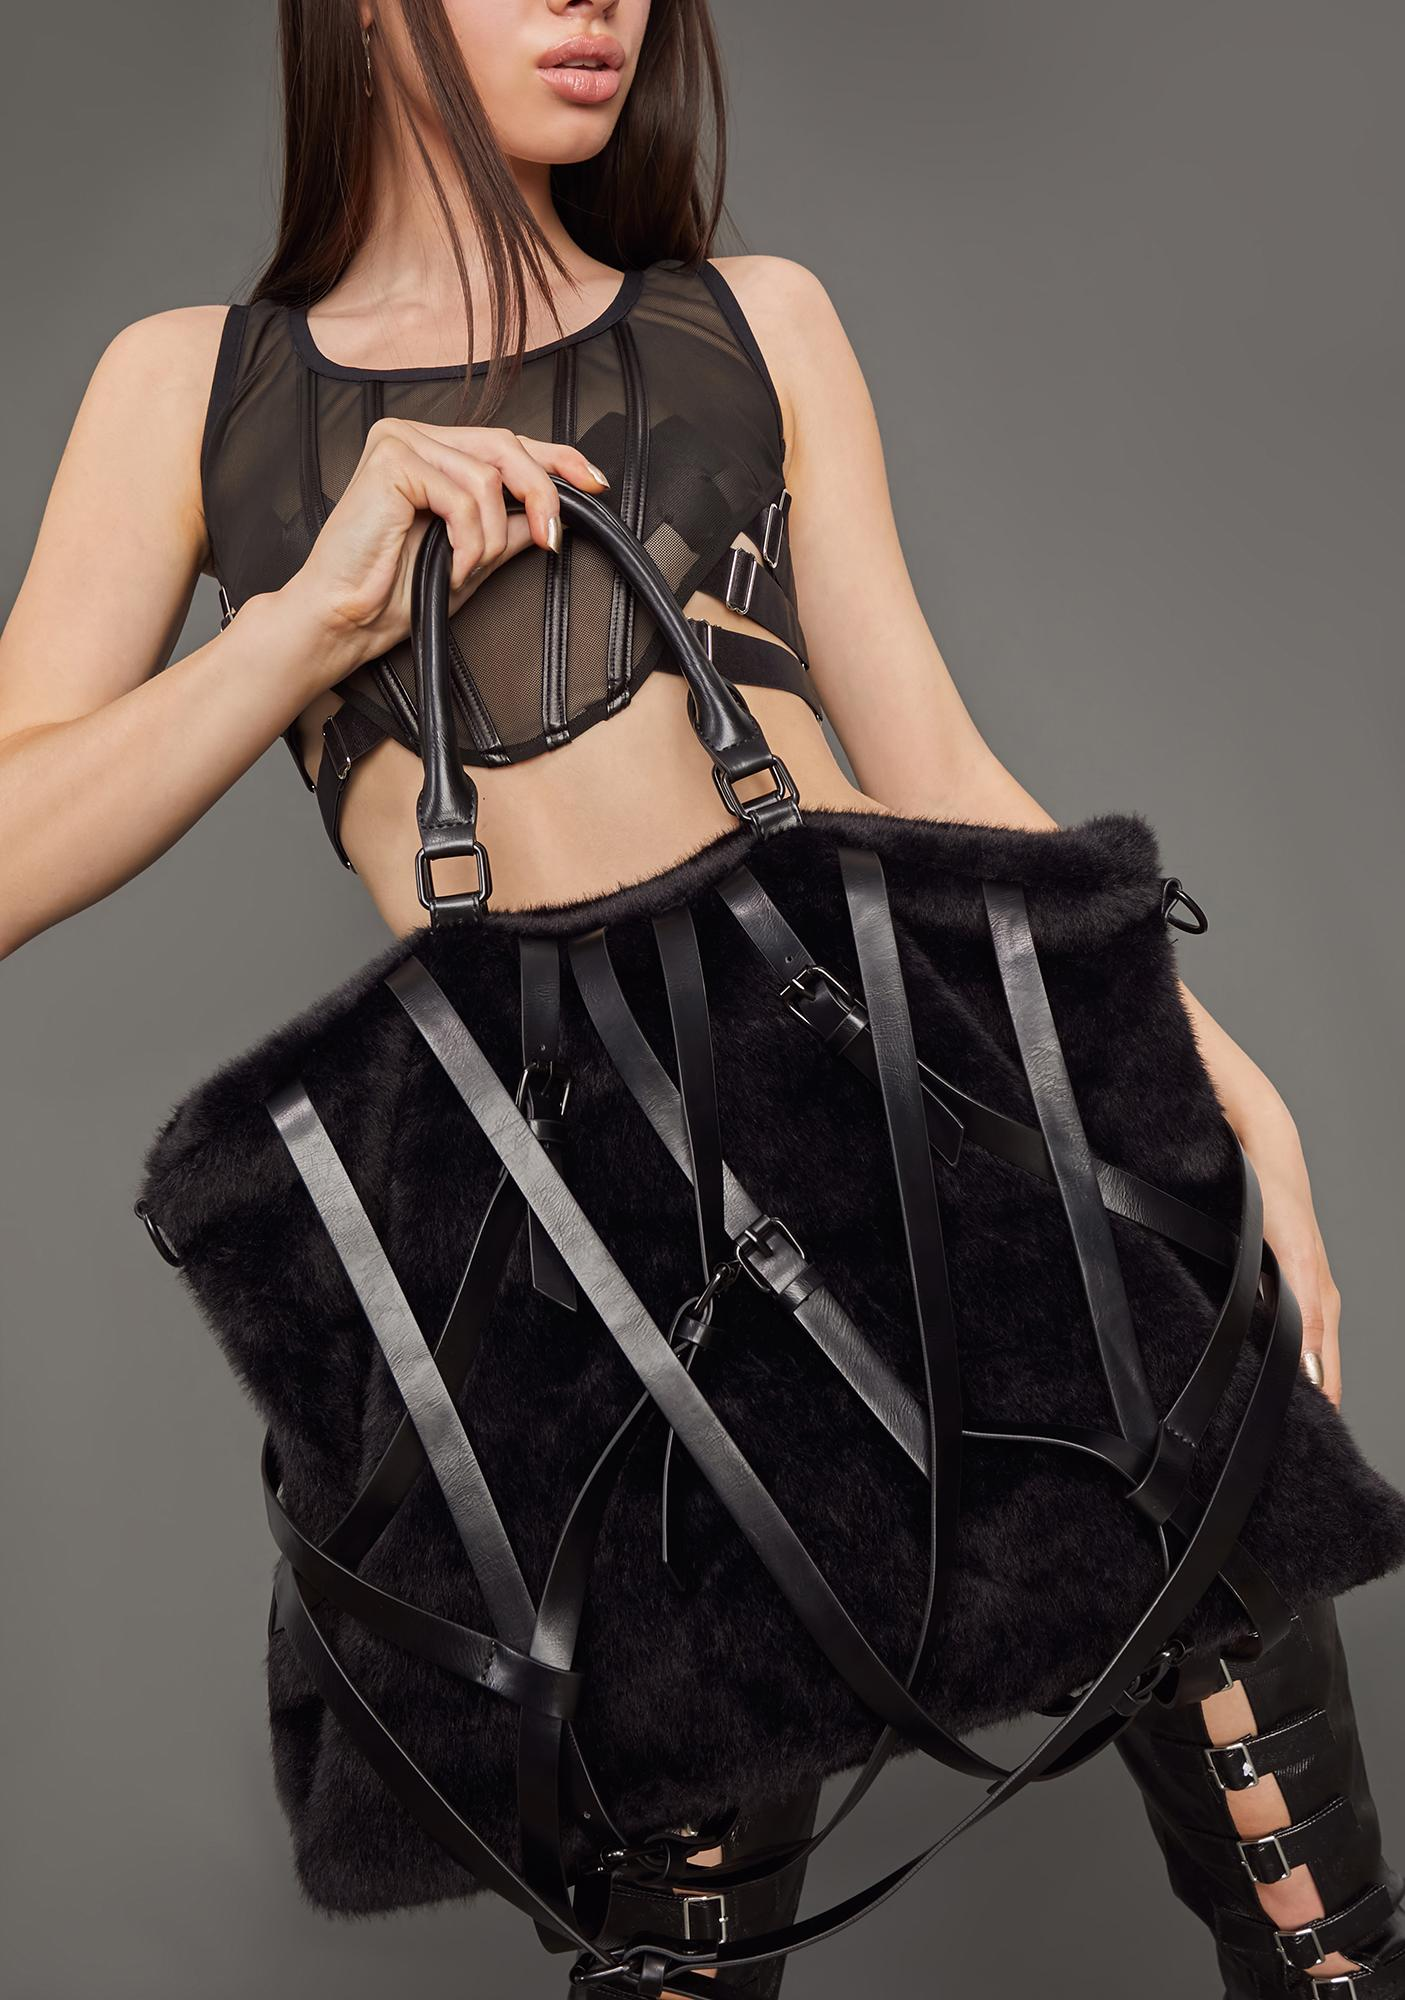 Poster Grl Buckle Up Strappy Weekender